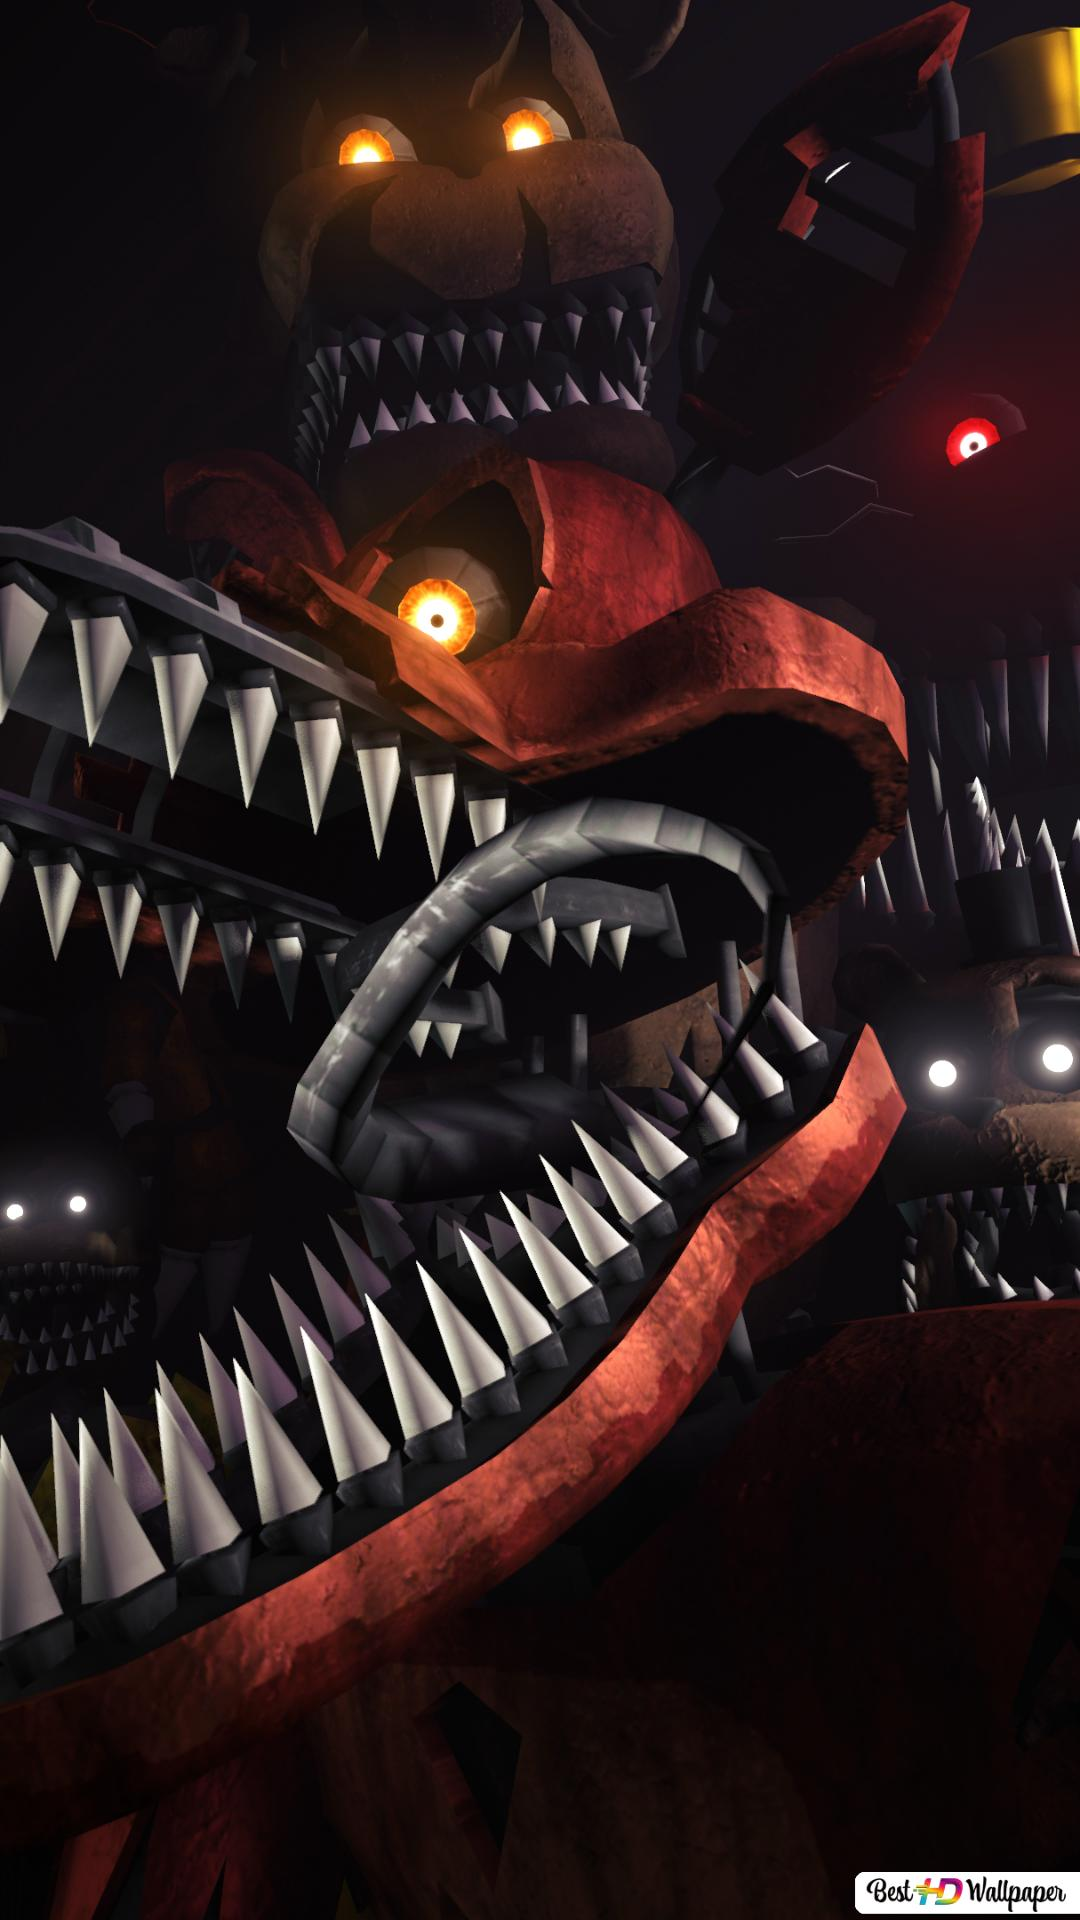 Five nights at freddy's 4 HD wallpaper download